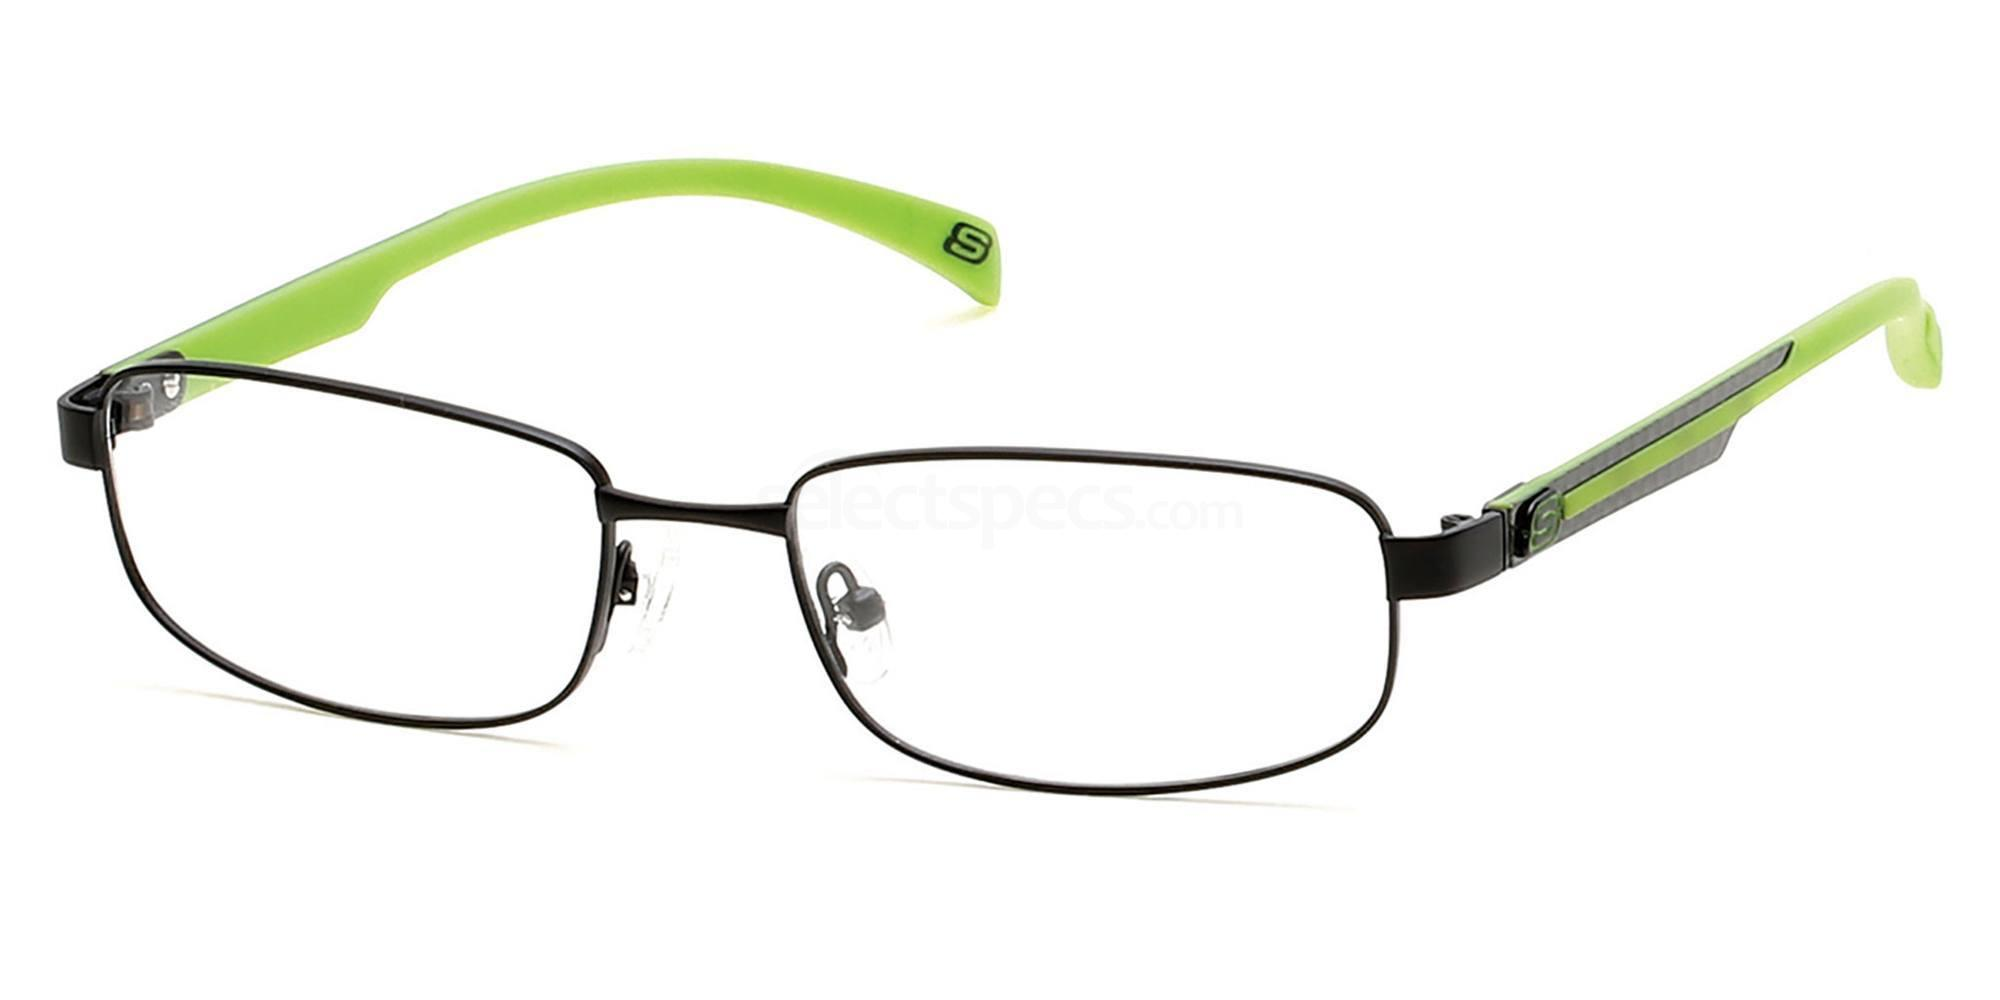 005 SE3181 Glasses, Skechers